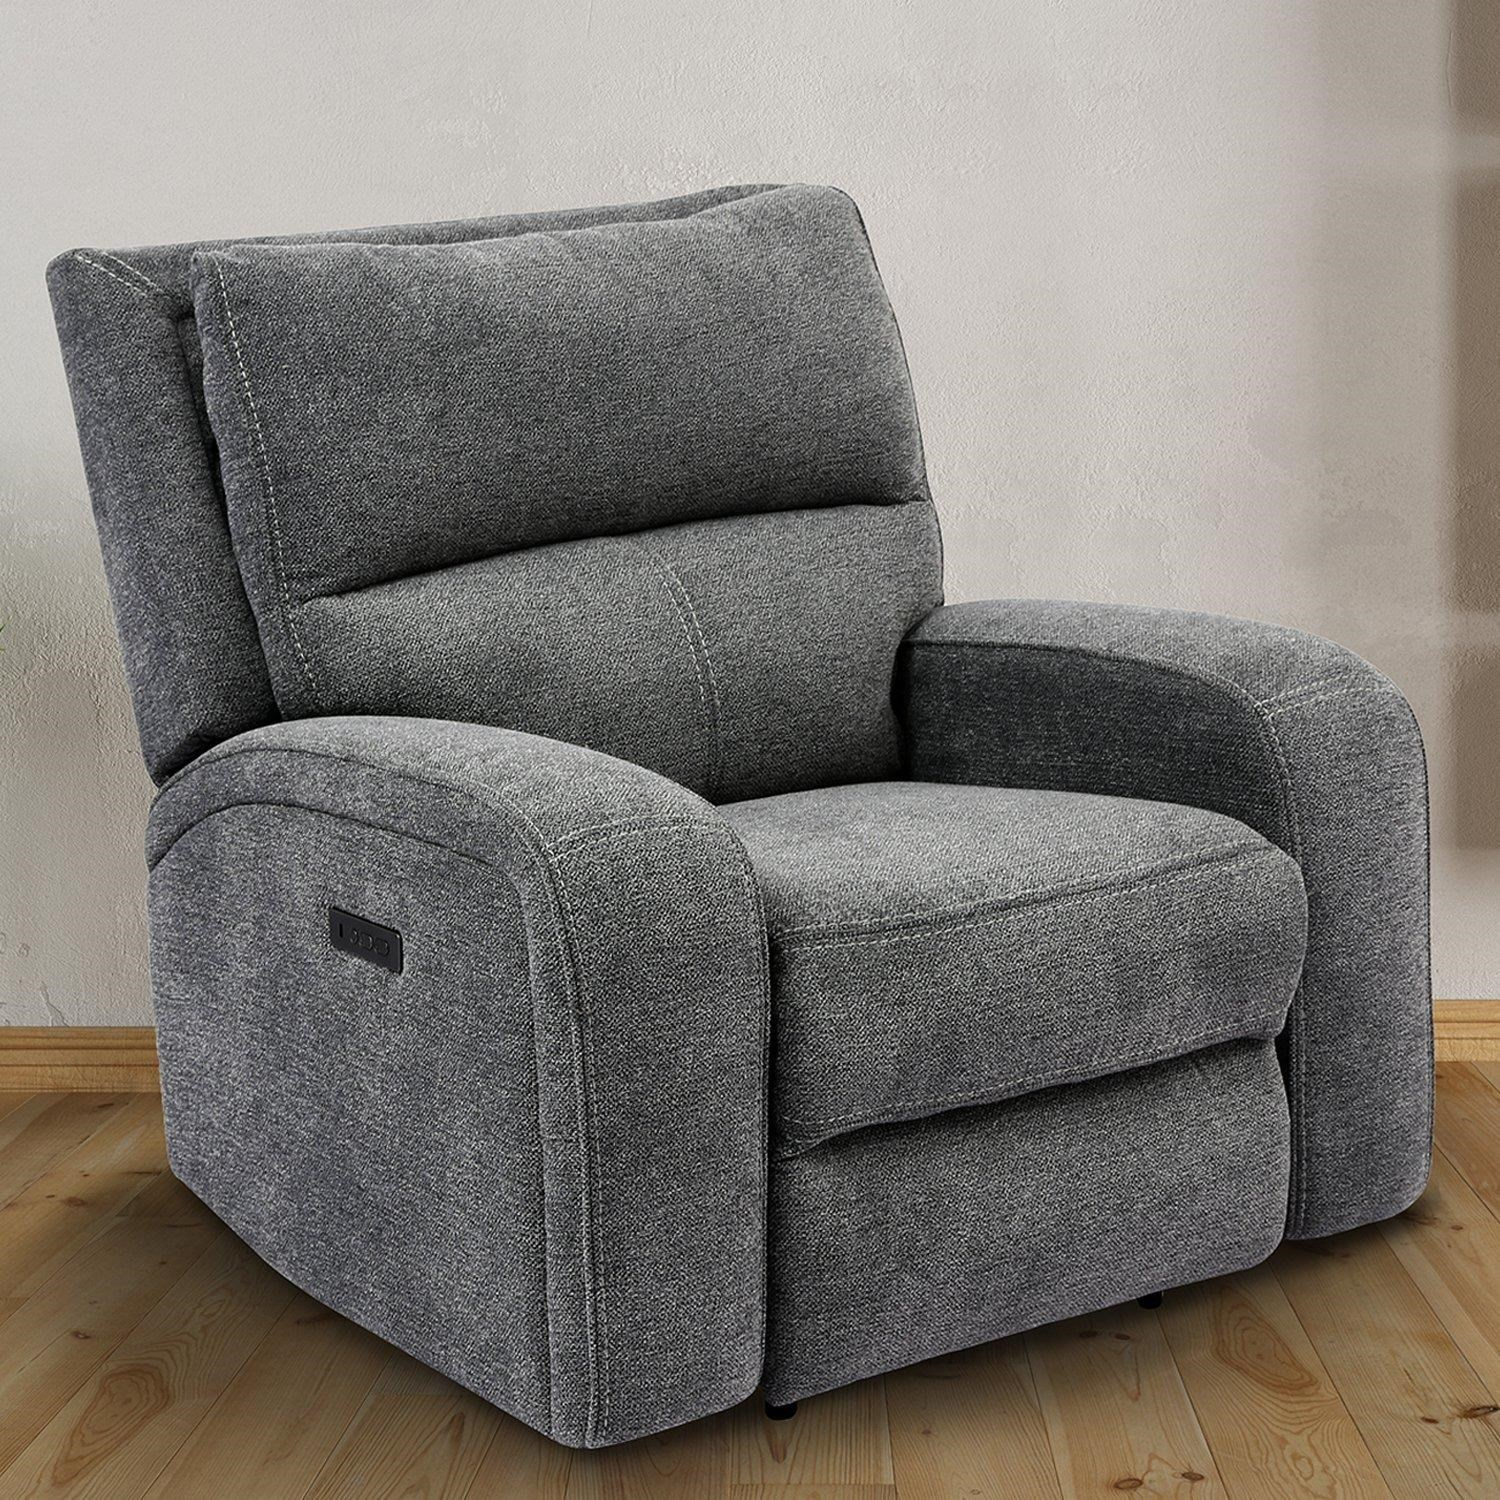 polaris BIZMARK GREY Power Recliner by Parker House at Johnny Janosik